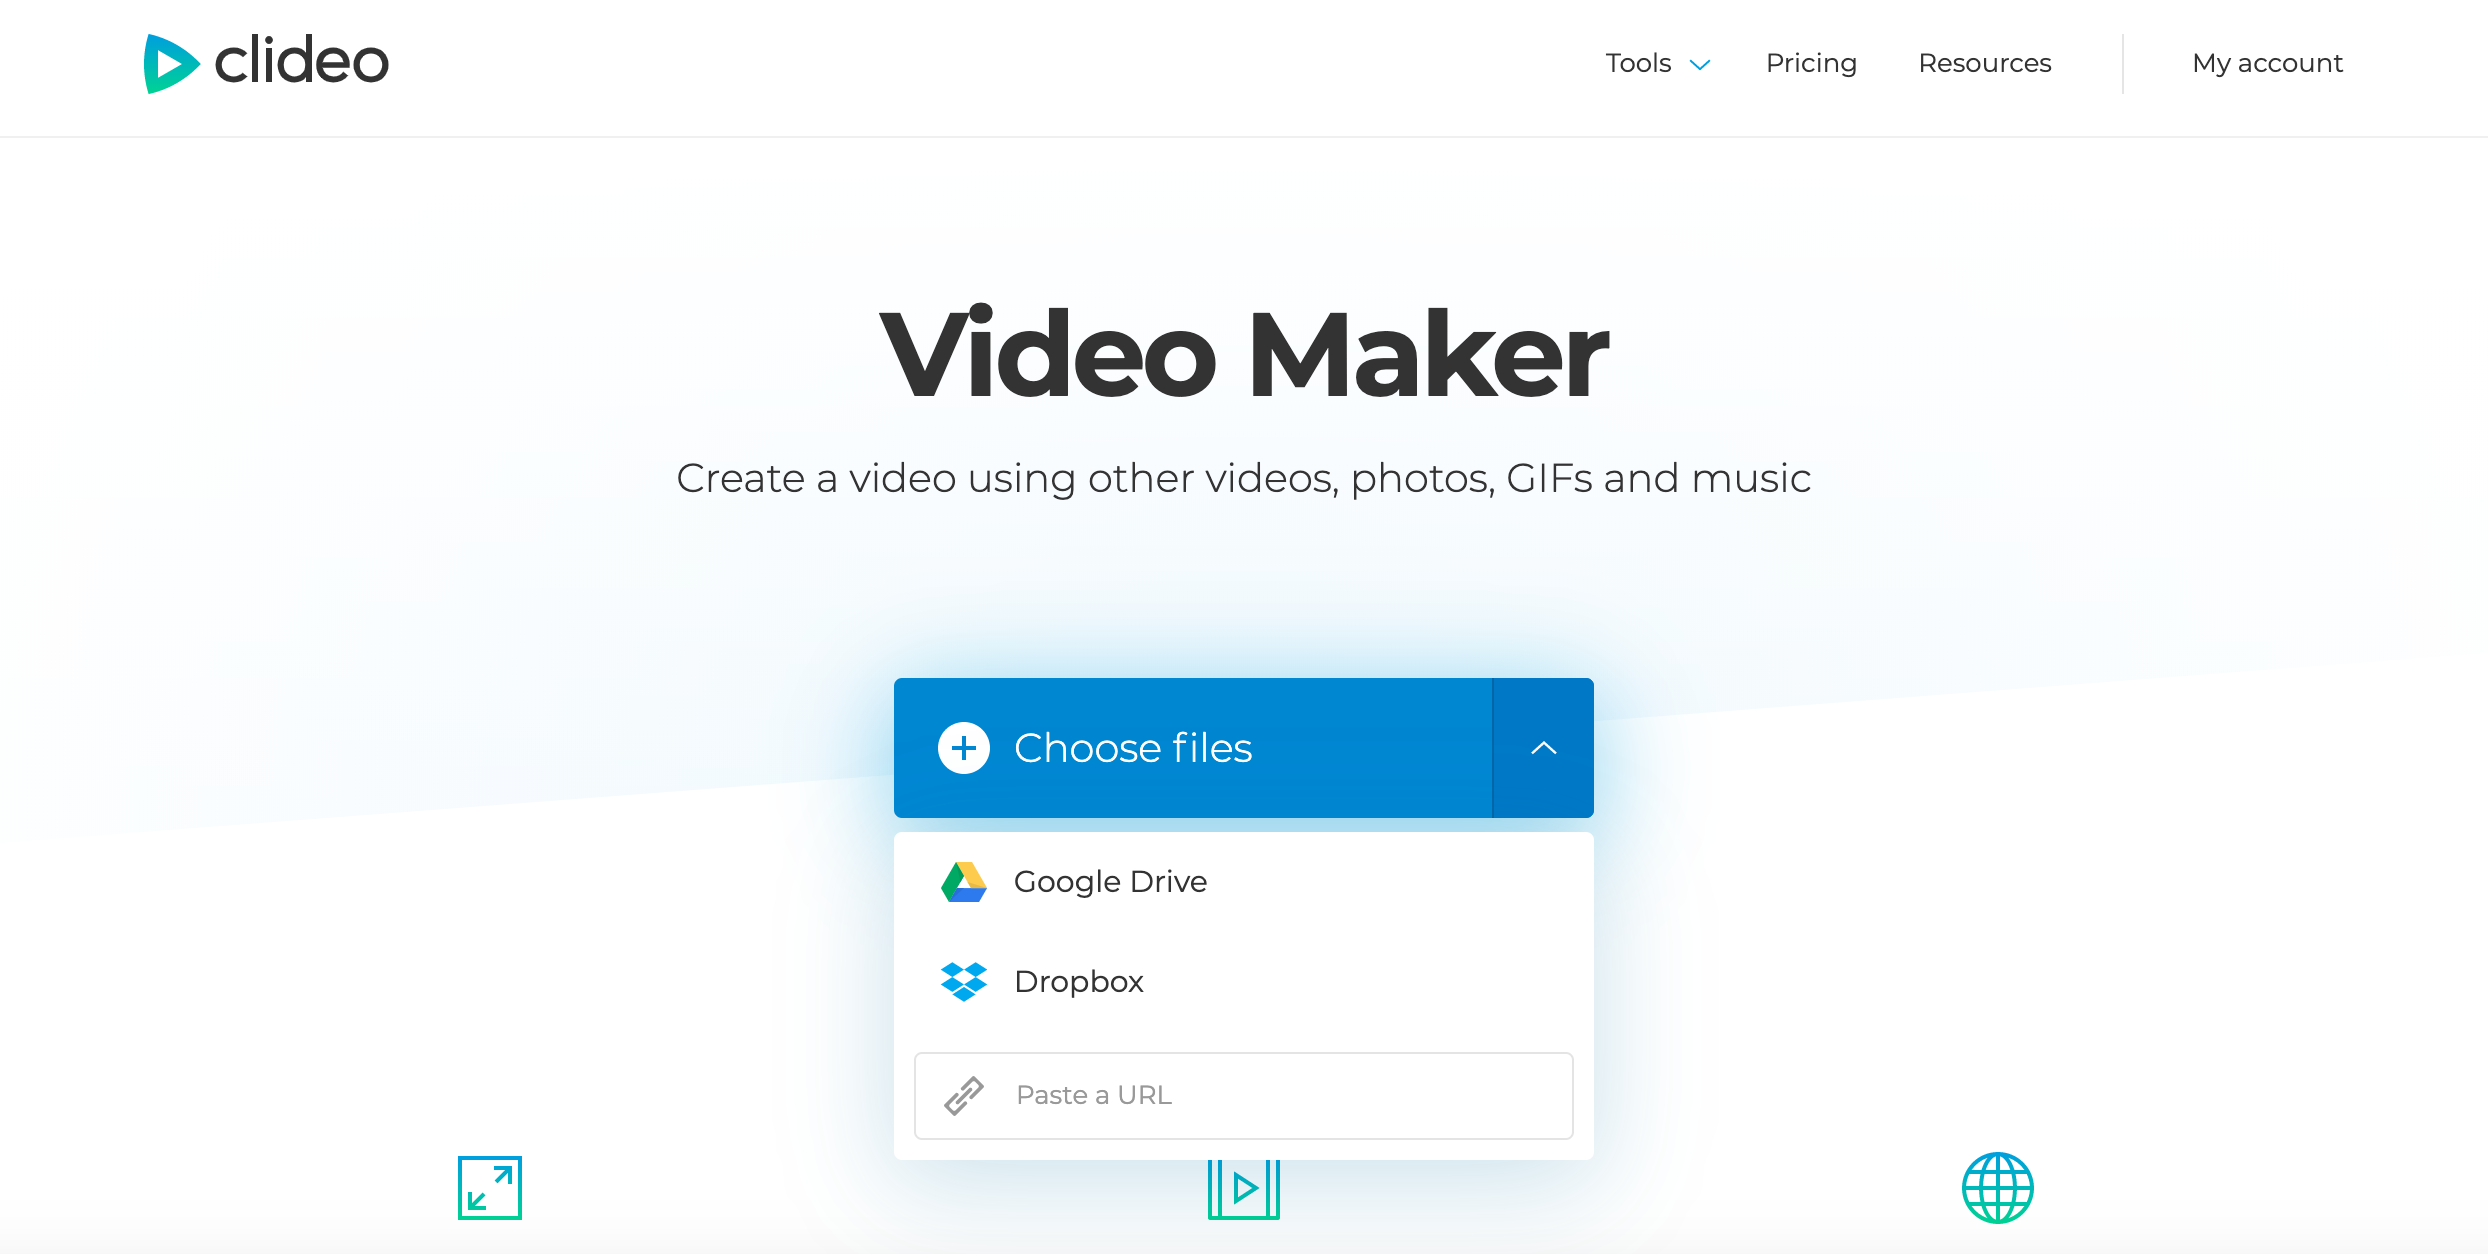 Upload files to make a video for Instagram